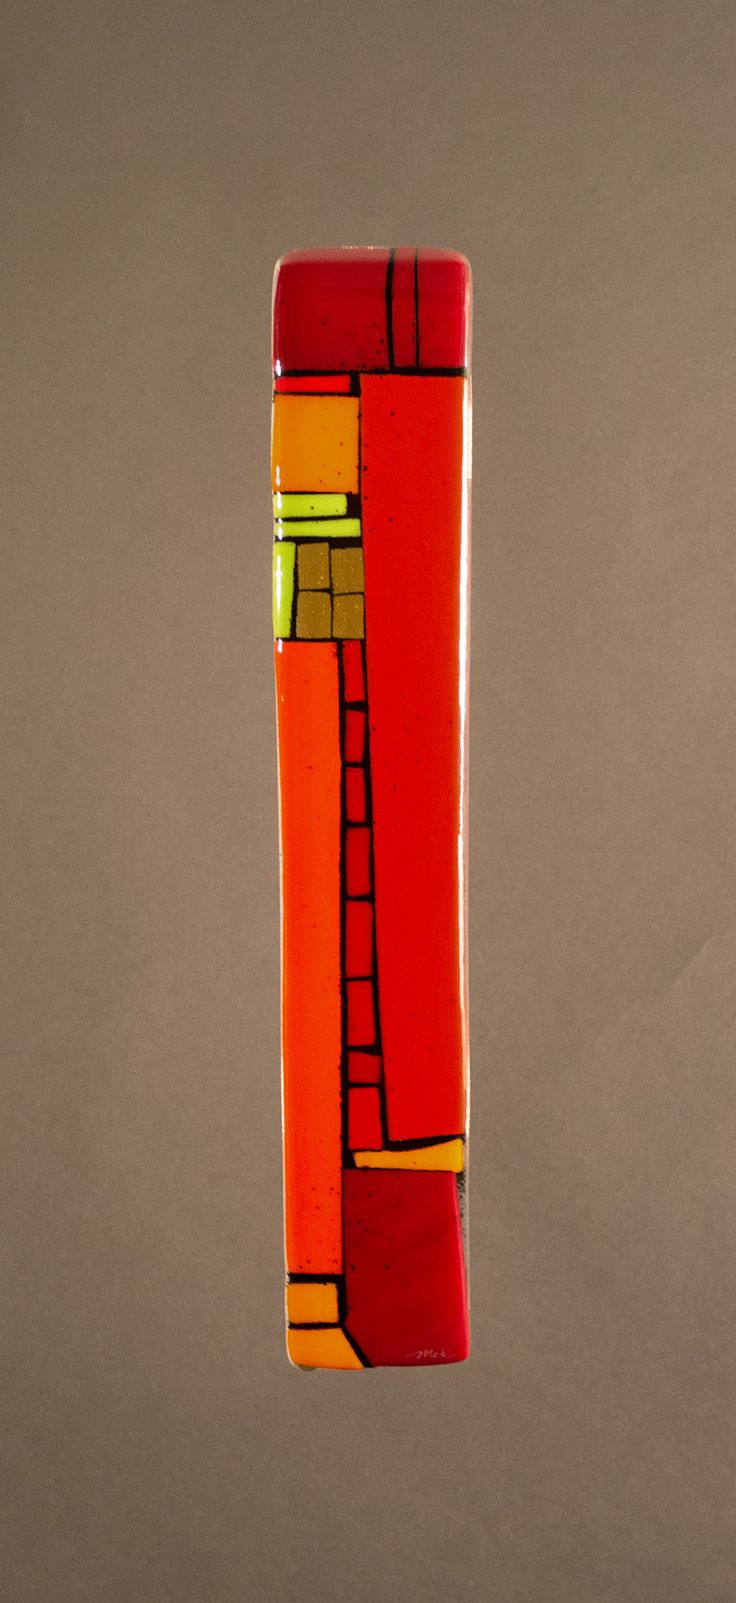 House Party Red II by Vicky Kokolski and Meg Branzetti. Pump up the volume; it is time for a party. Created by cutting vibrant red and accented orange and green art glass. Outlined with powdered frit to achieve the desired effect. Hung with picture frame wire in the back.